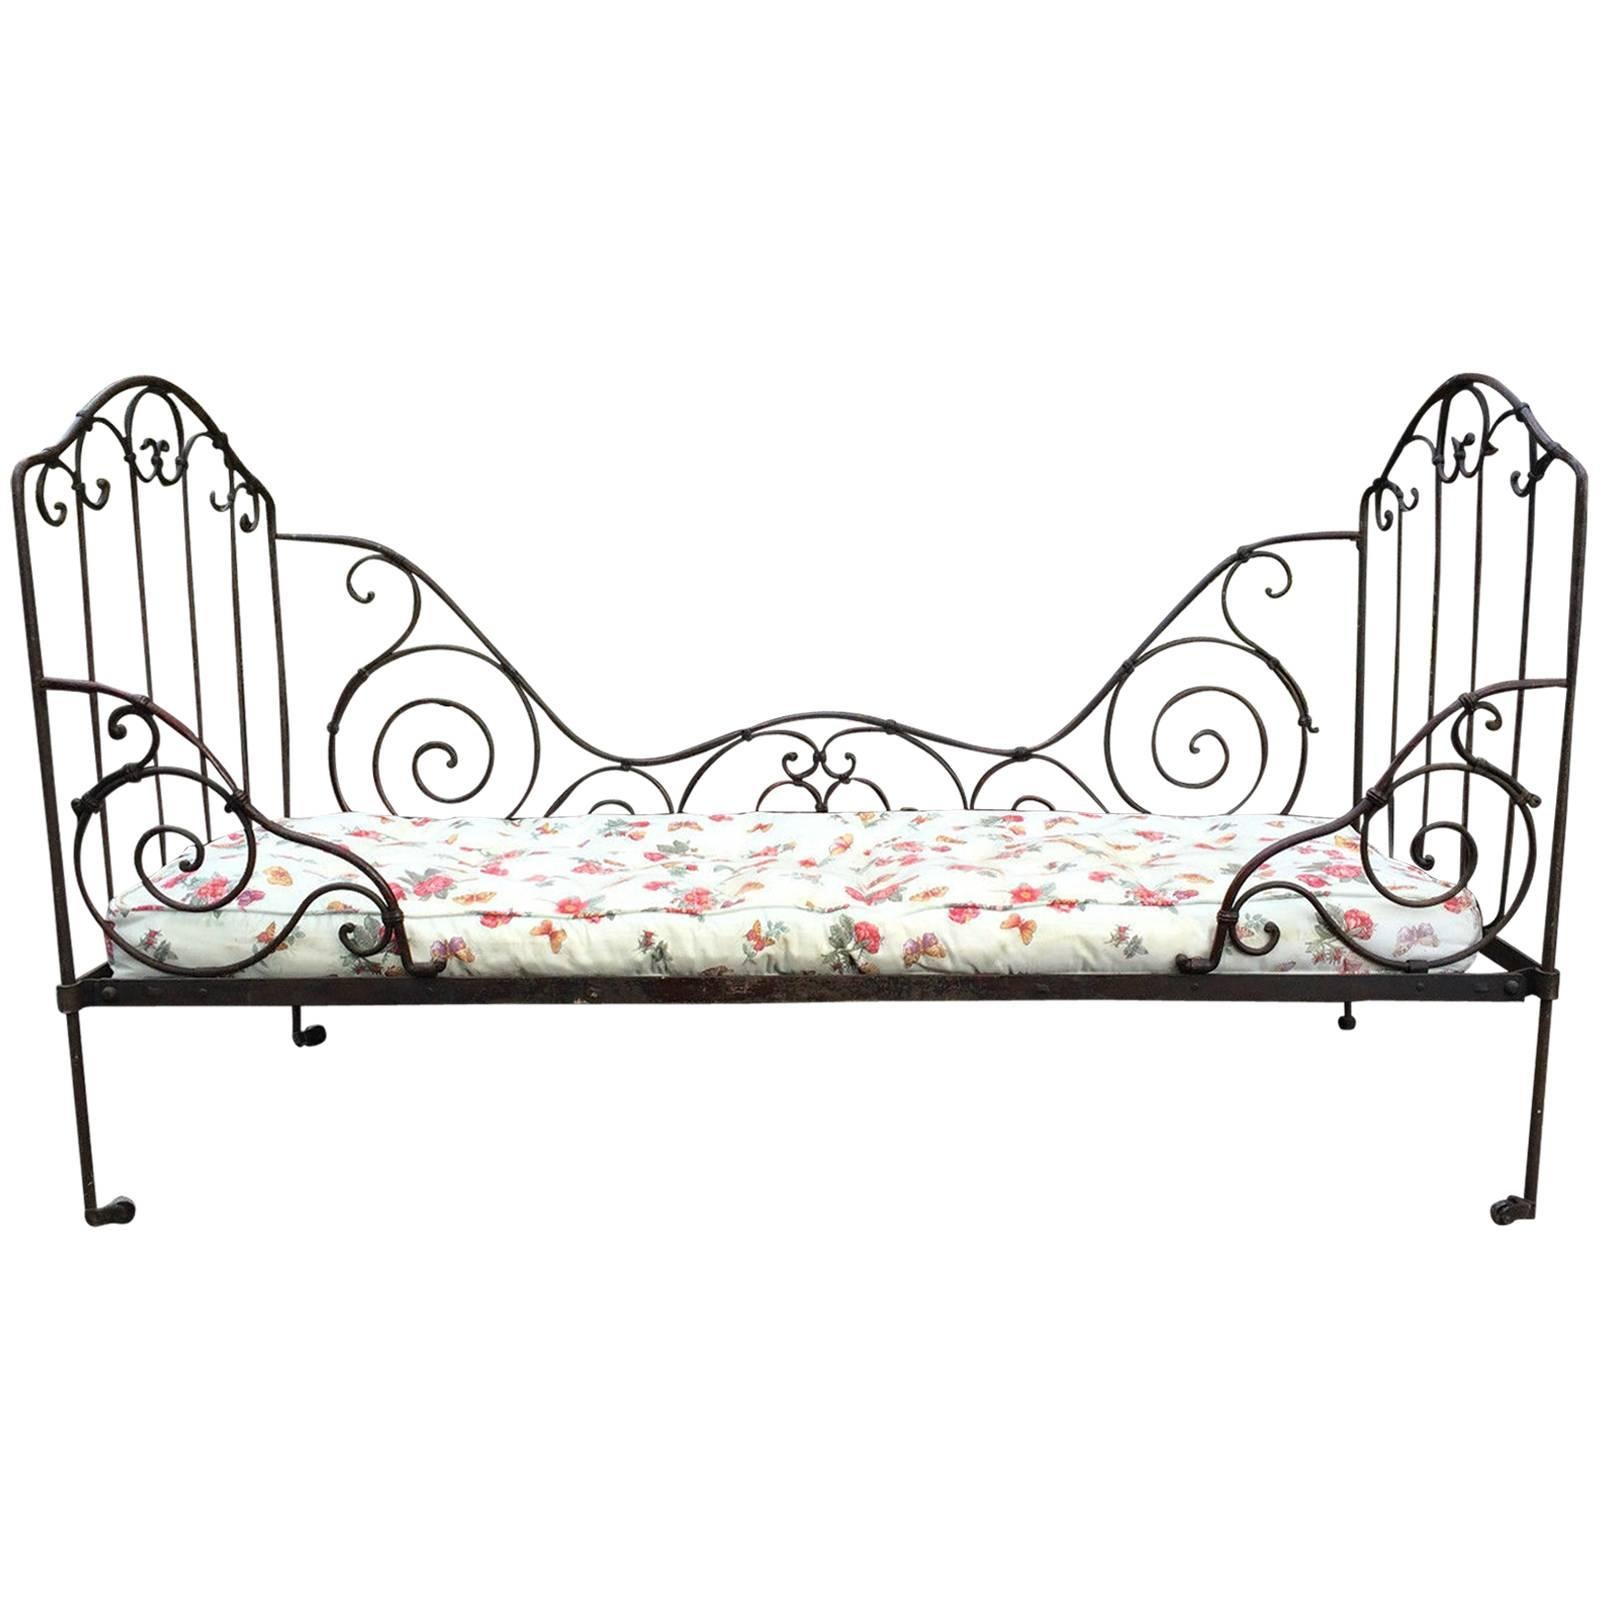 Picture of: Antique Wrought Iron Beds 1 For Sale On 1stdibs